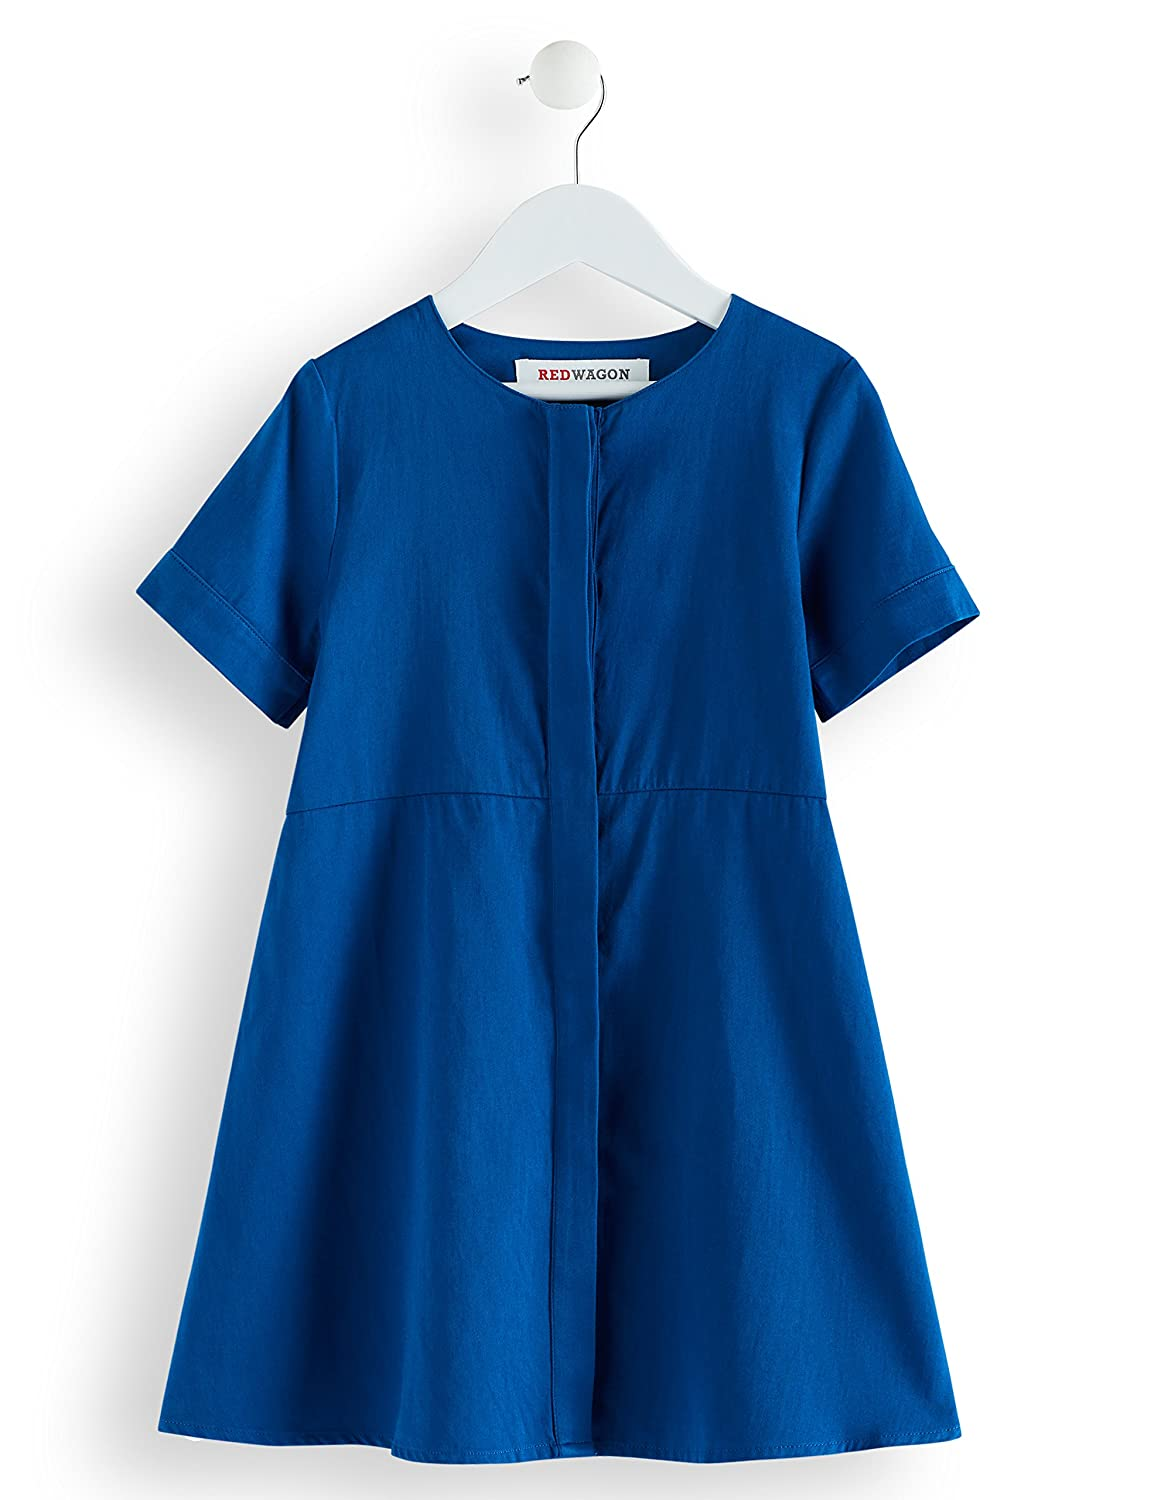 RED WAGON Girl's Shift Dress PI-AM-SS-18-01